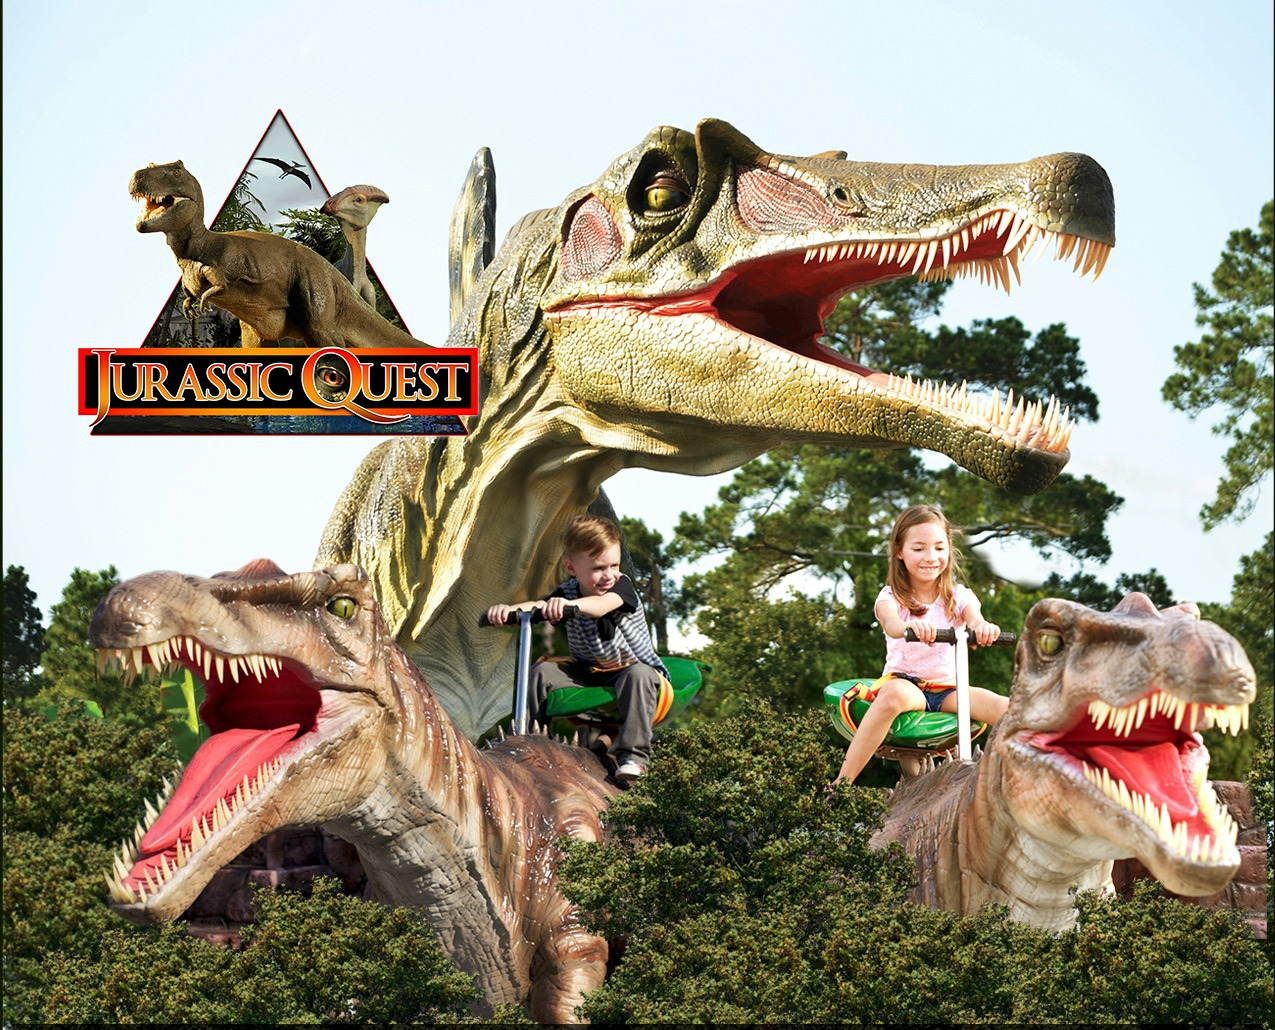 Jurassic Quest Allentown, PA